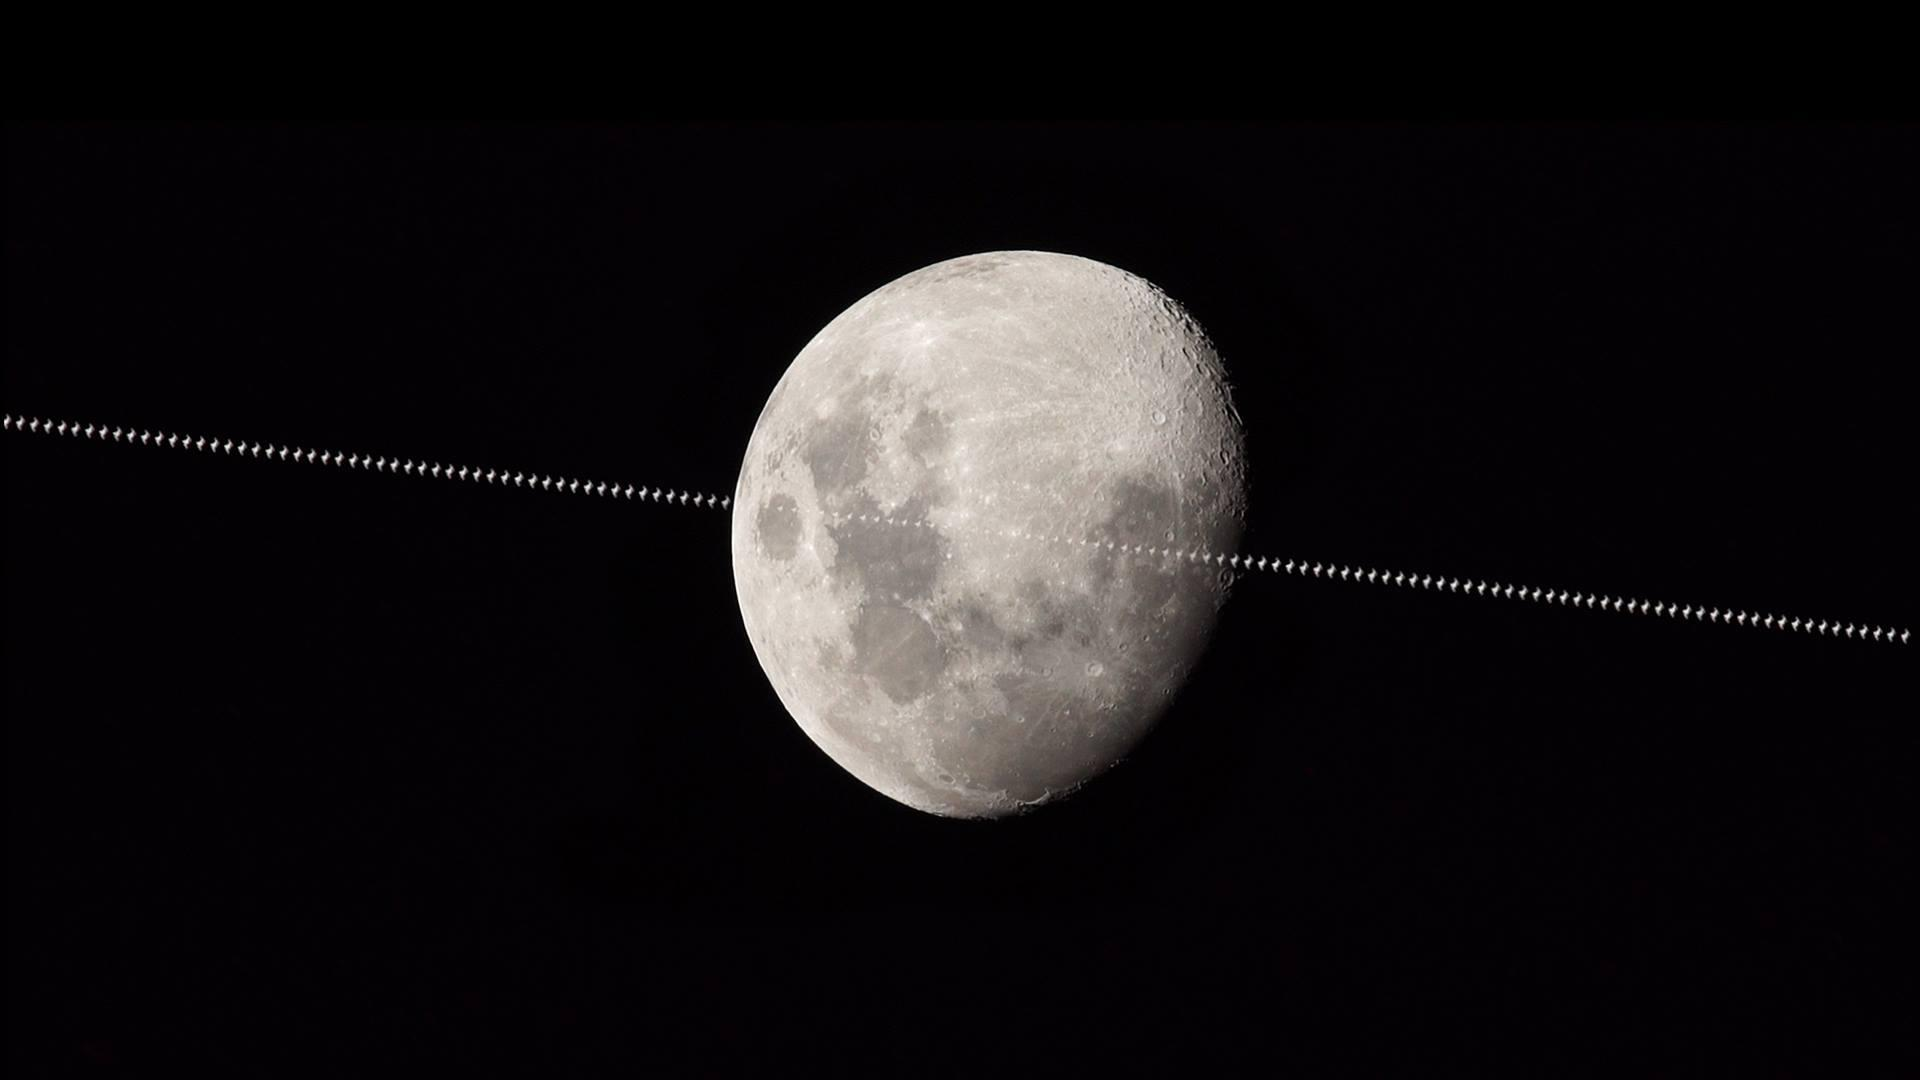 ISS crosses the moon's face | Today's Image | EarthSky